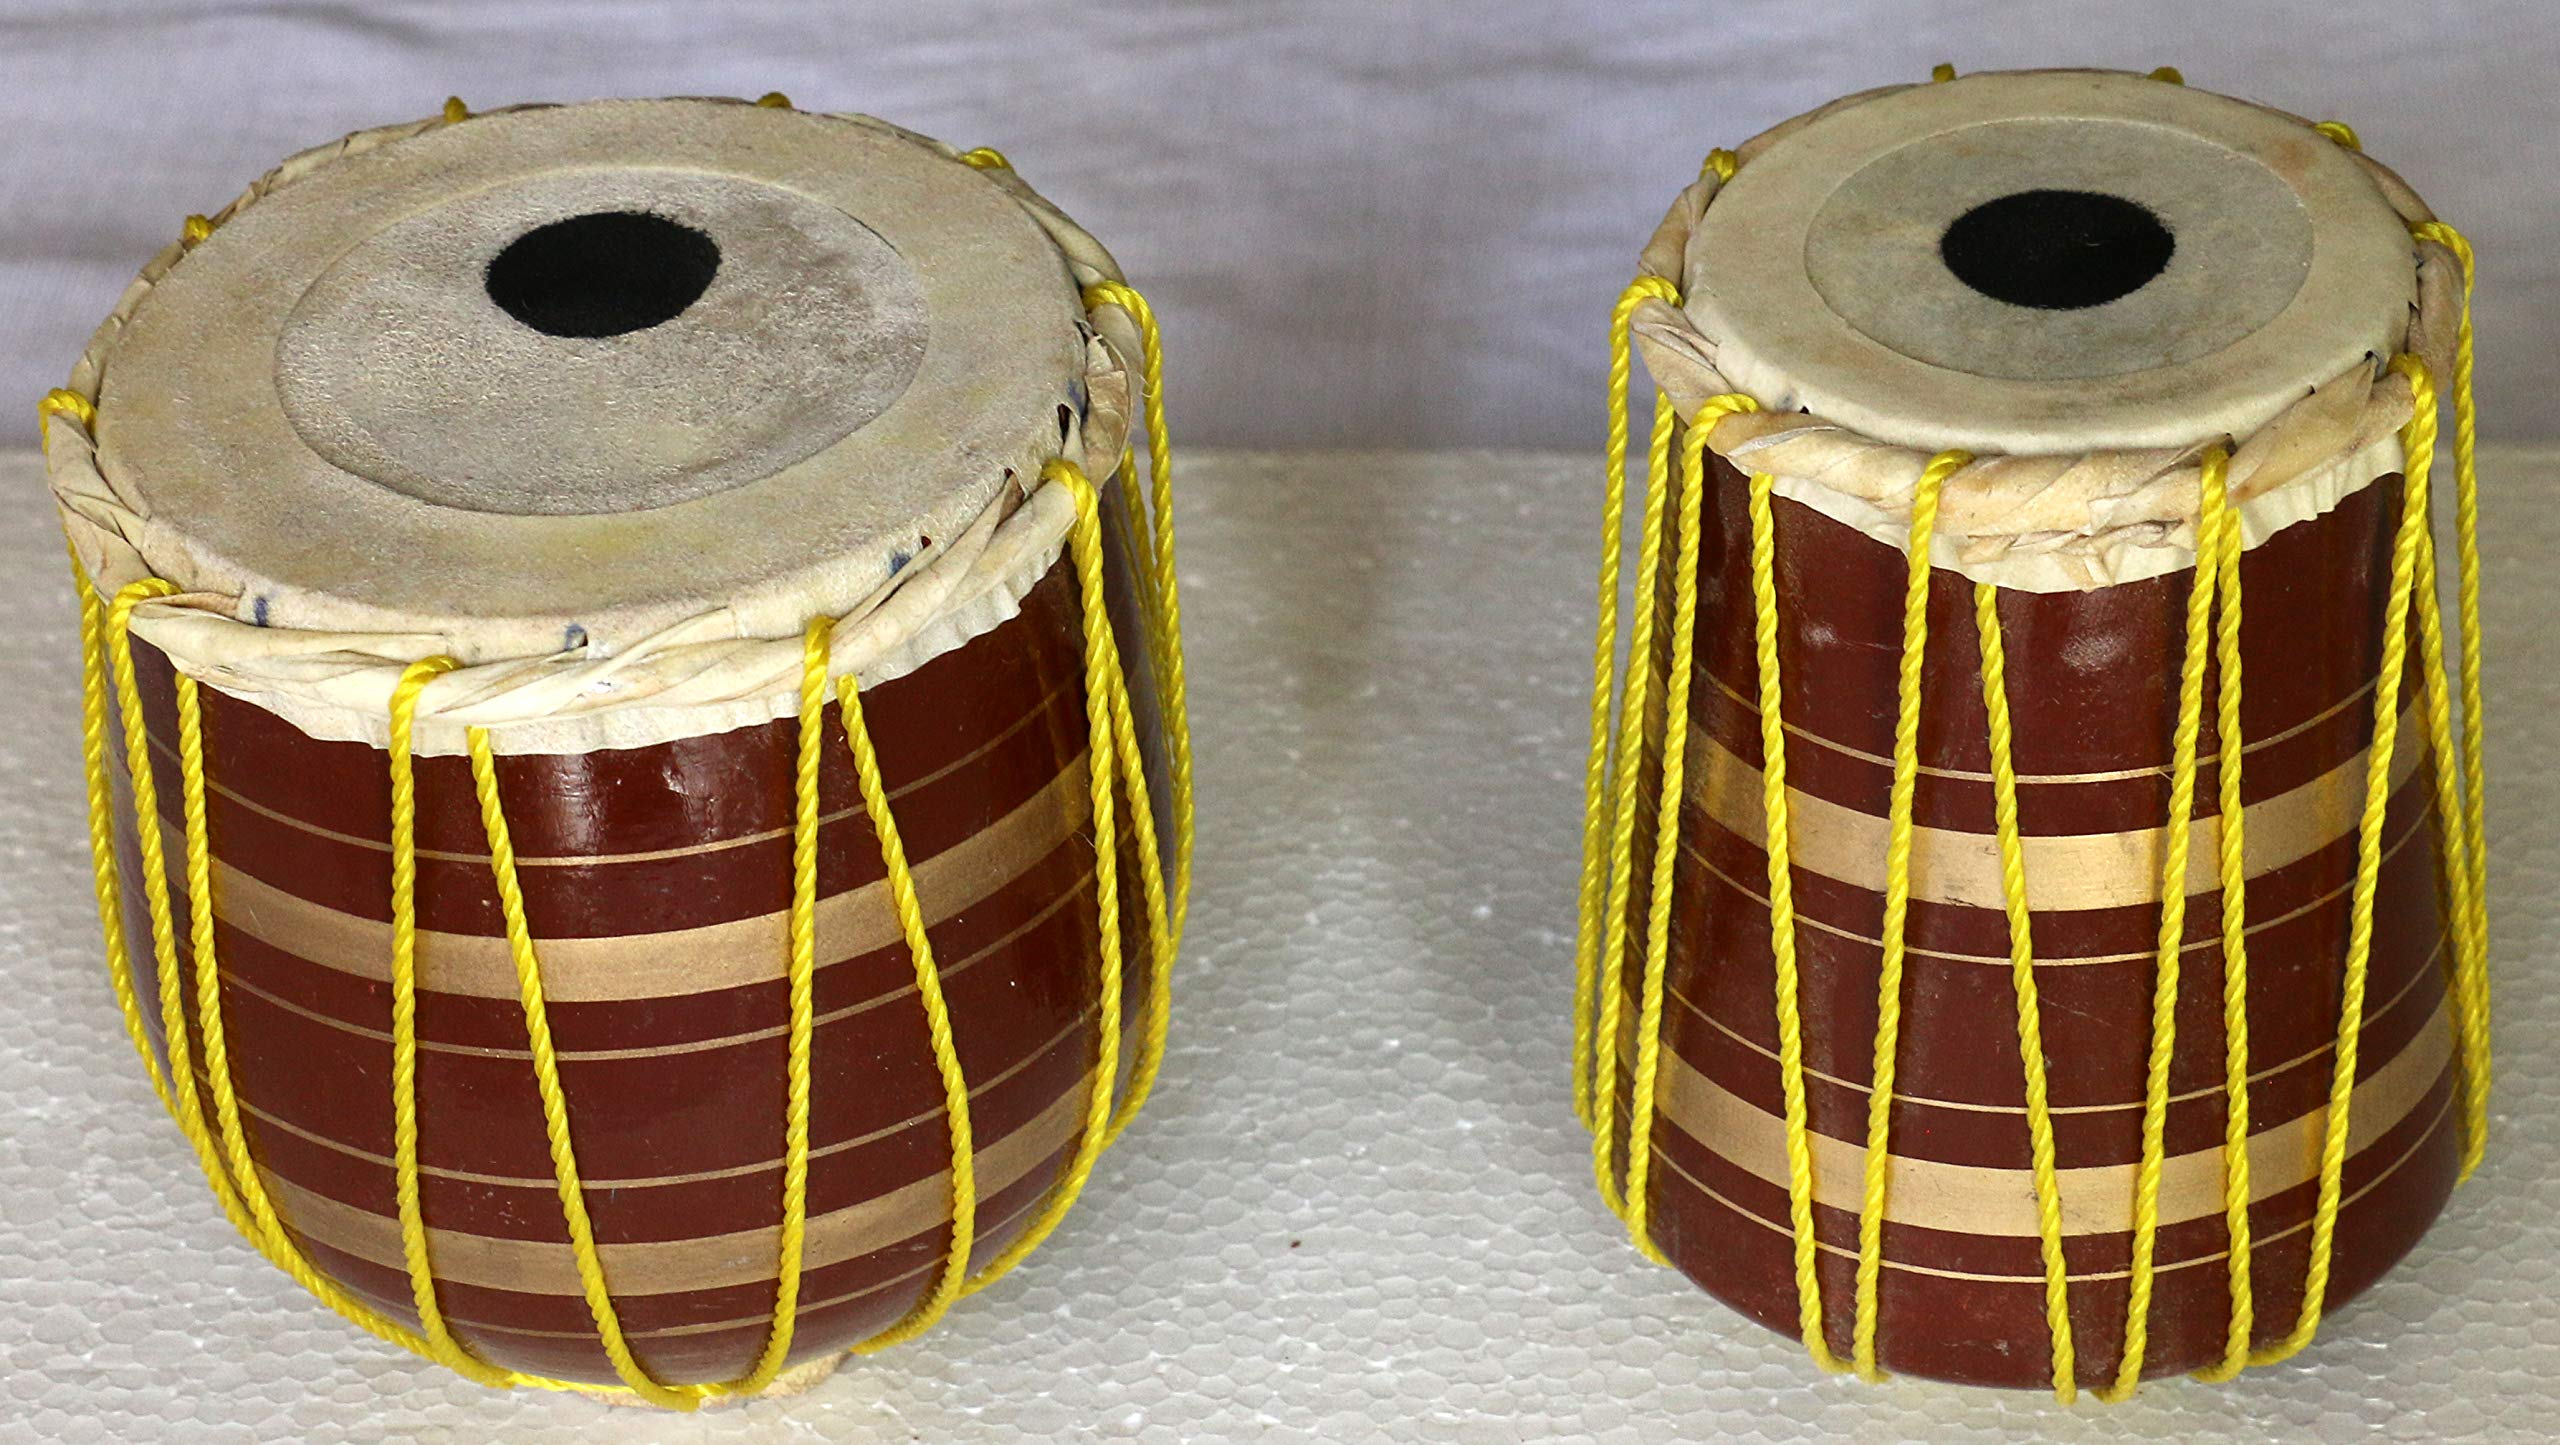 Miniature Tabla set Show Piece to Gift a Musician Friend (Not Actual) Decoration